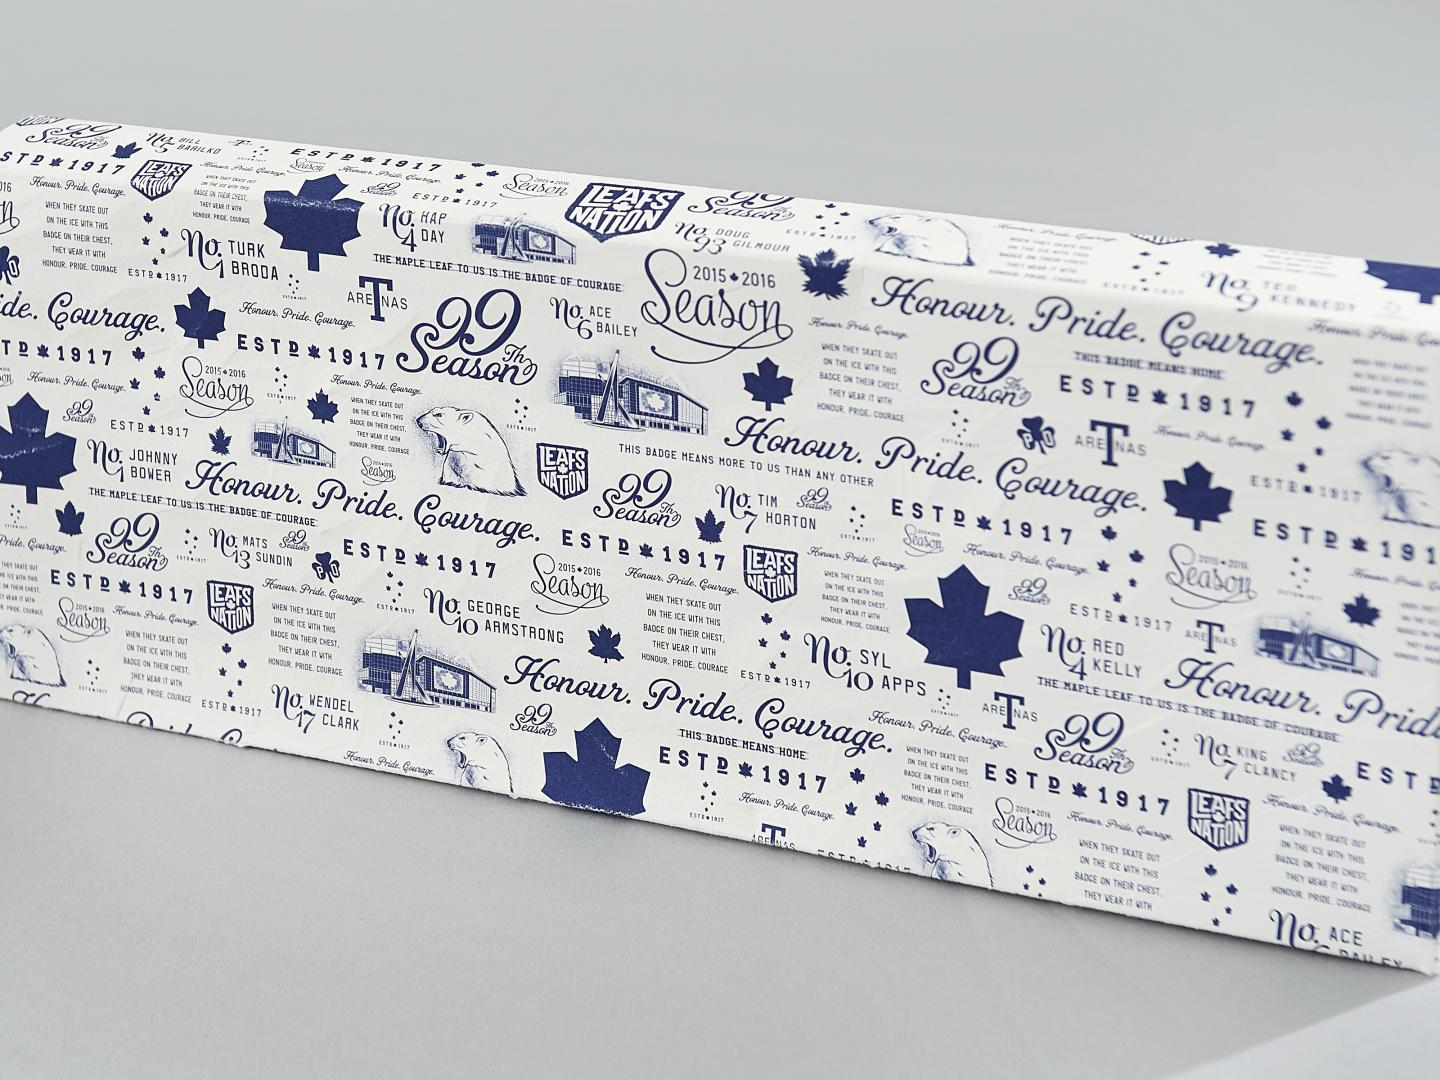 Toronto Maple Leafs 2015-2016 Season Ticket Package Thumbnail